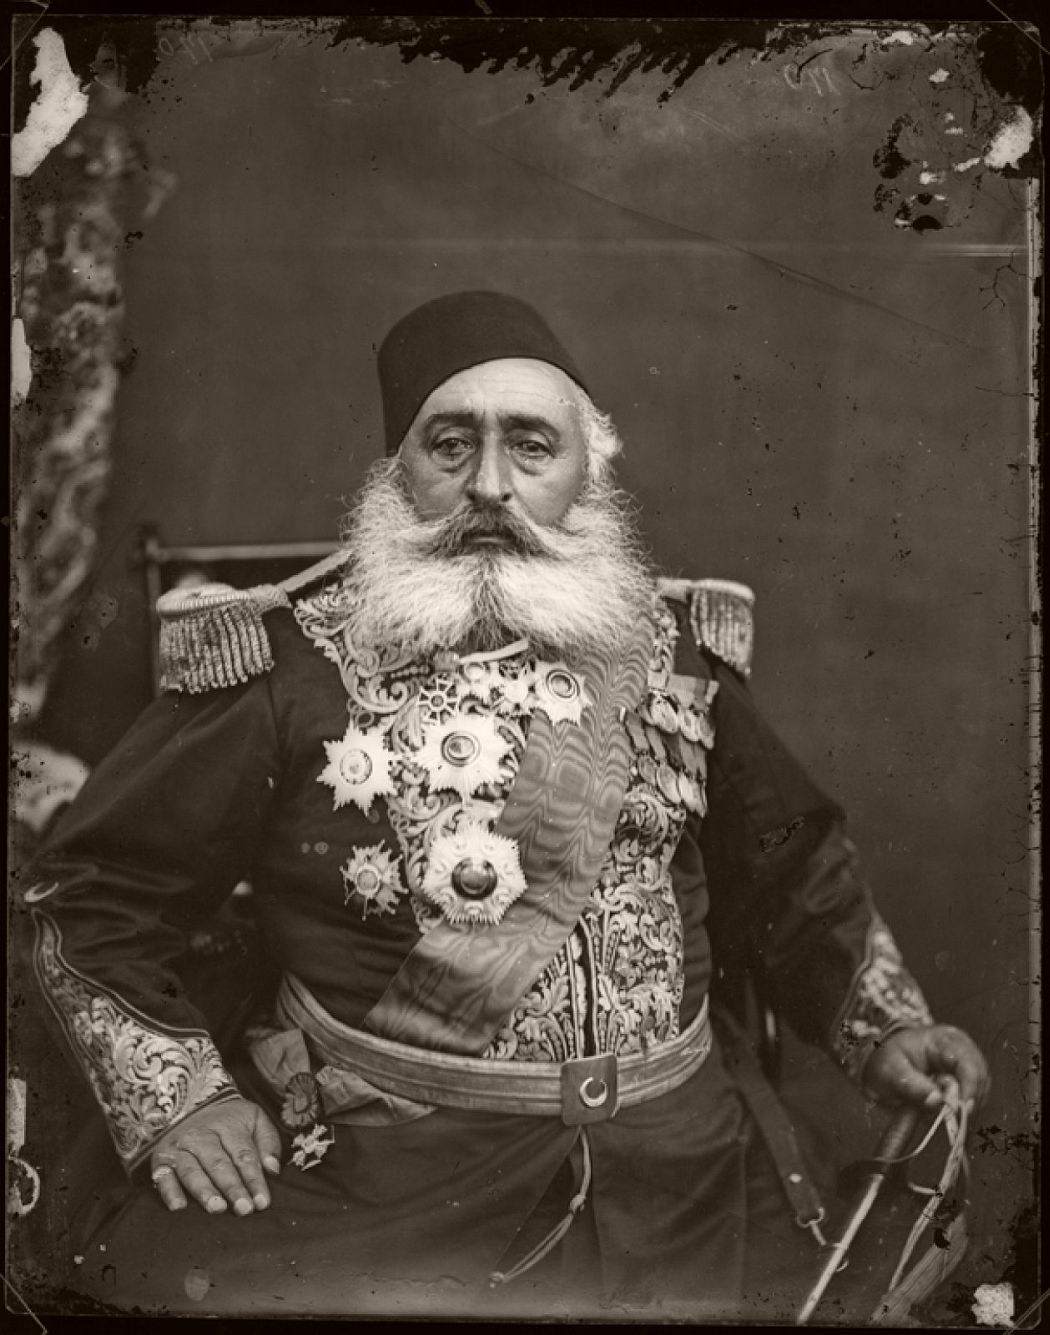 Ismail Pasha, 1875, Pietro Marubi, wet plate © Marubi National Museum of Photography